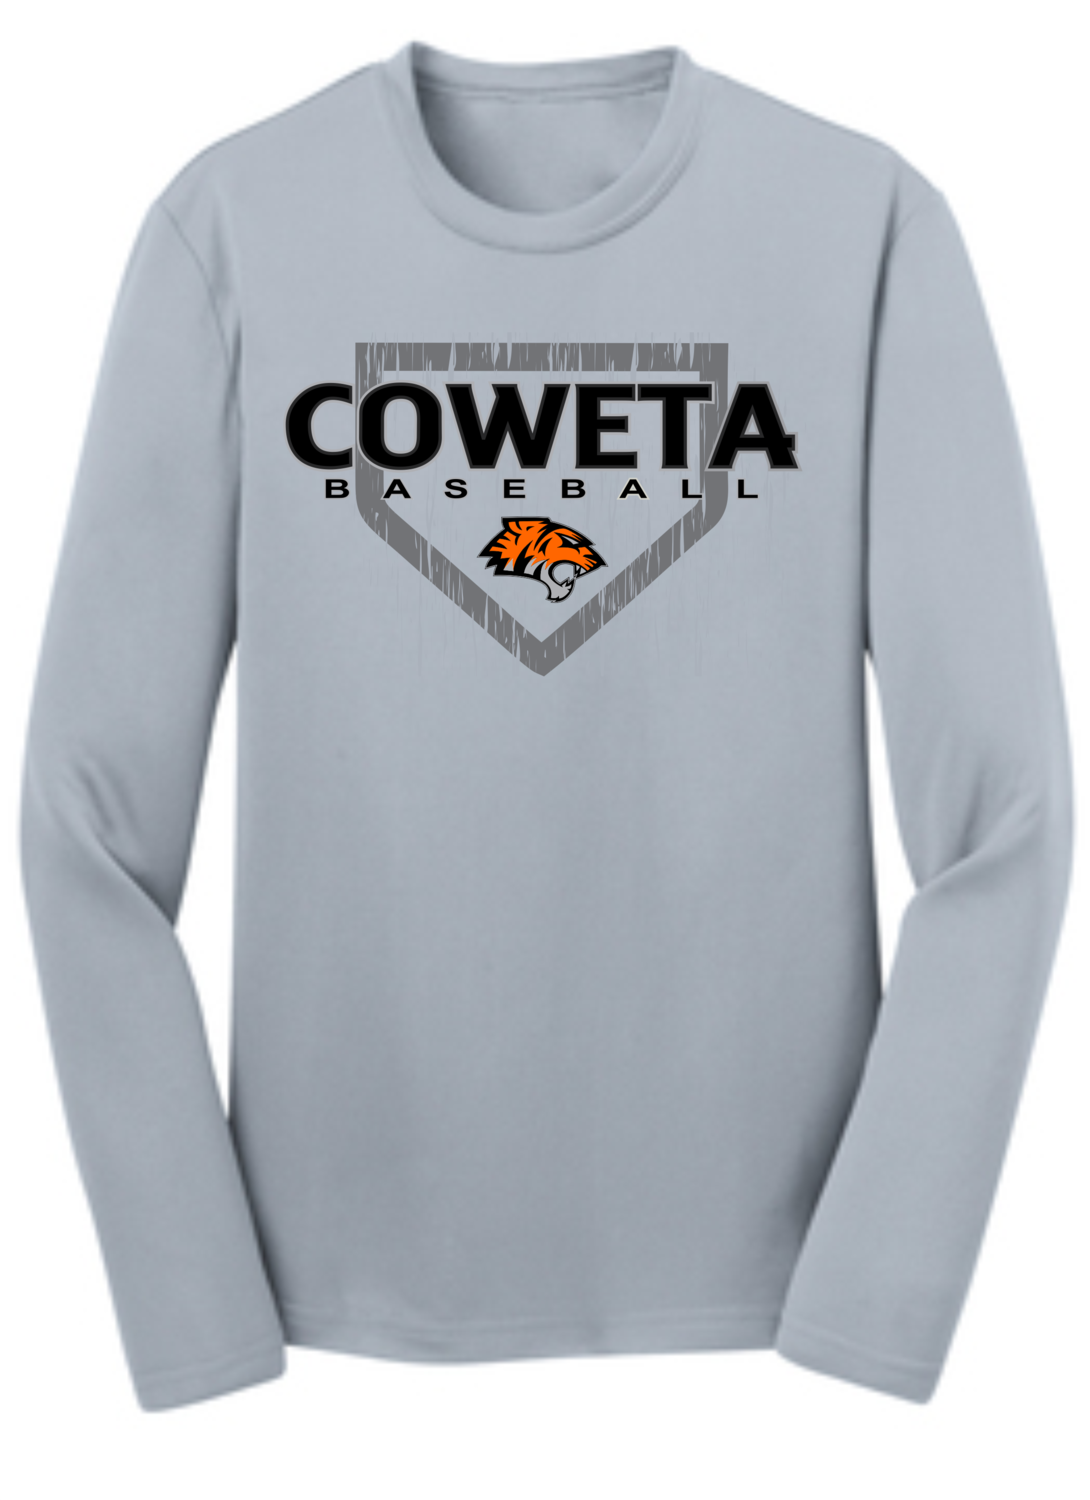 YST350LS YOUTH Sport-Tek® Youth Long Sleeve PosiCharge® Competitor™ Tee